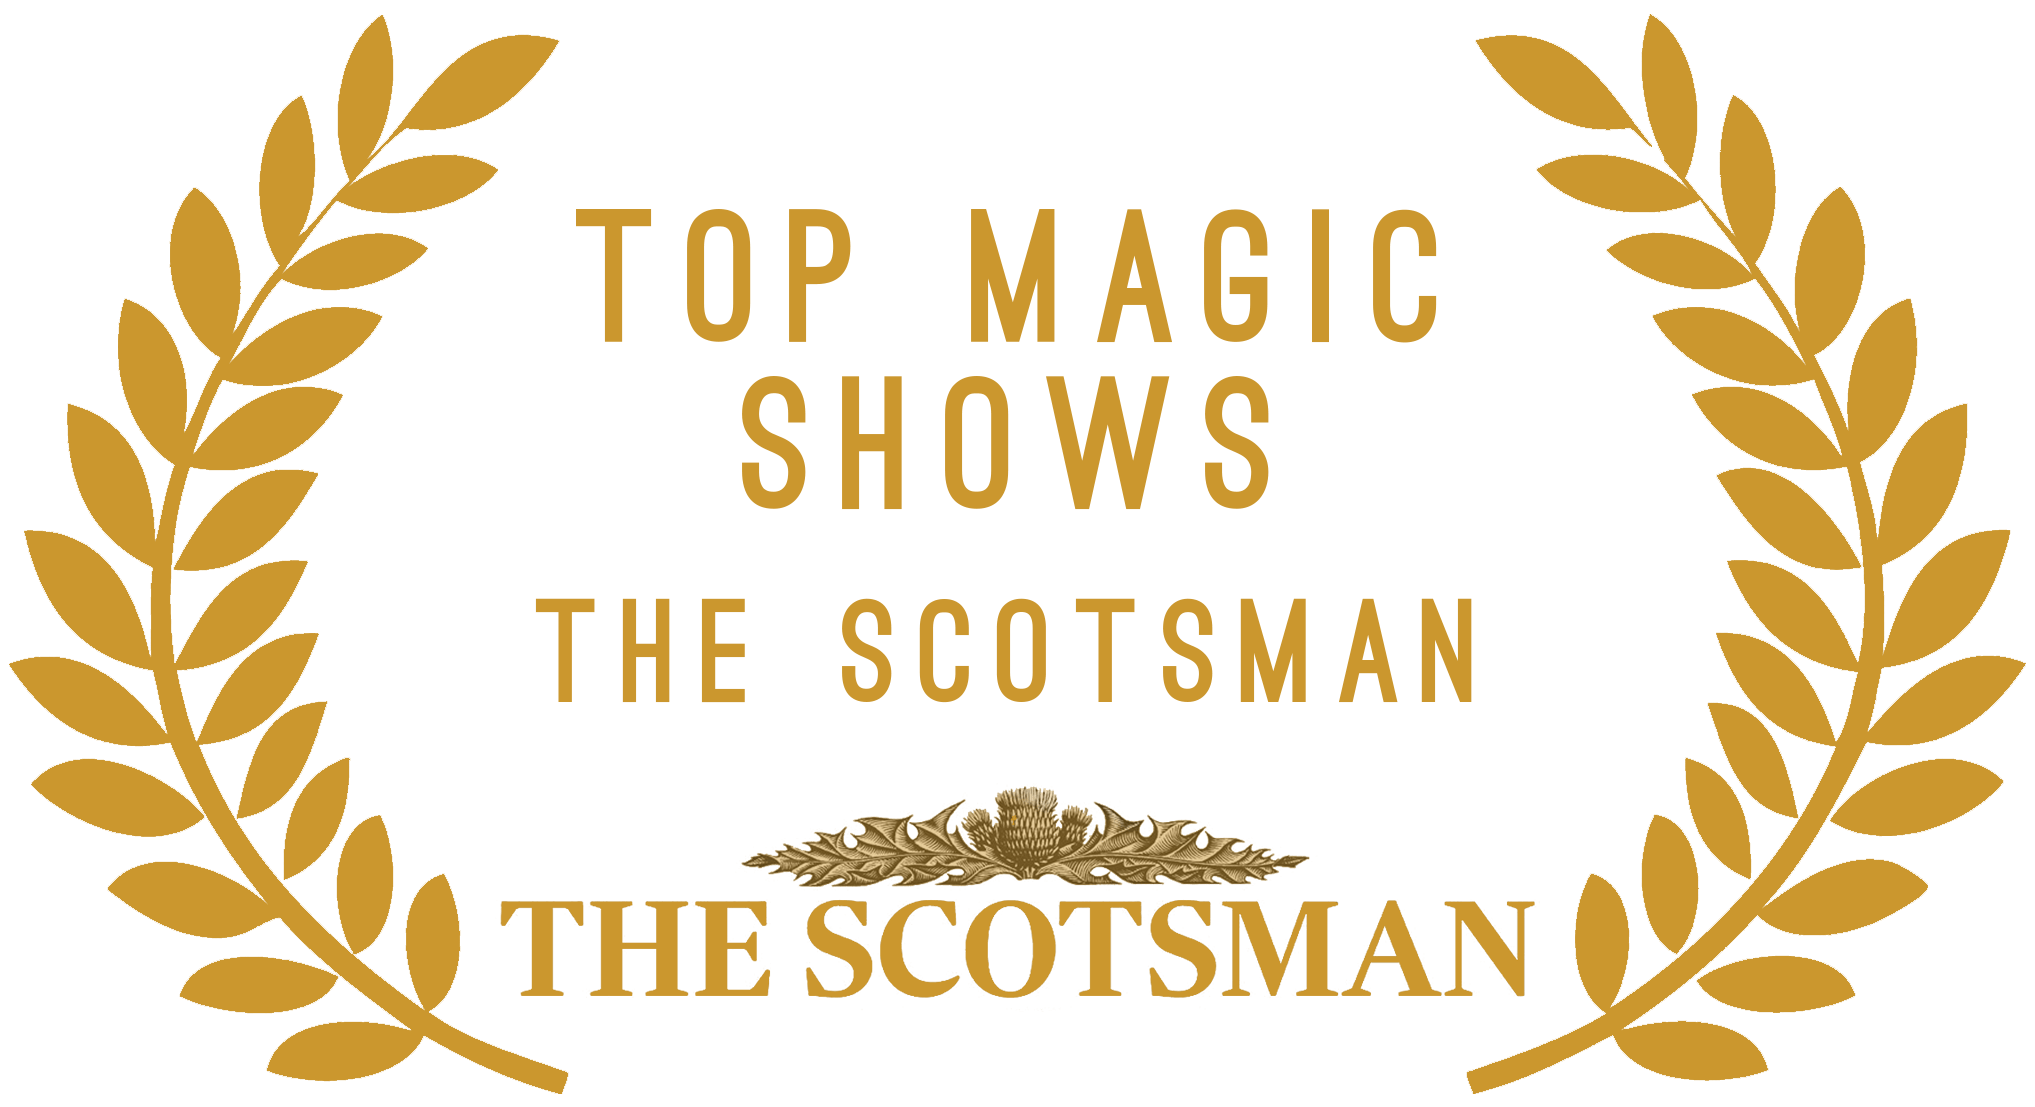 The scotsman top magic show award for Manchester magician Aaron Calvert